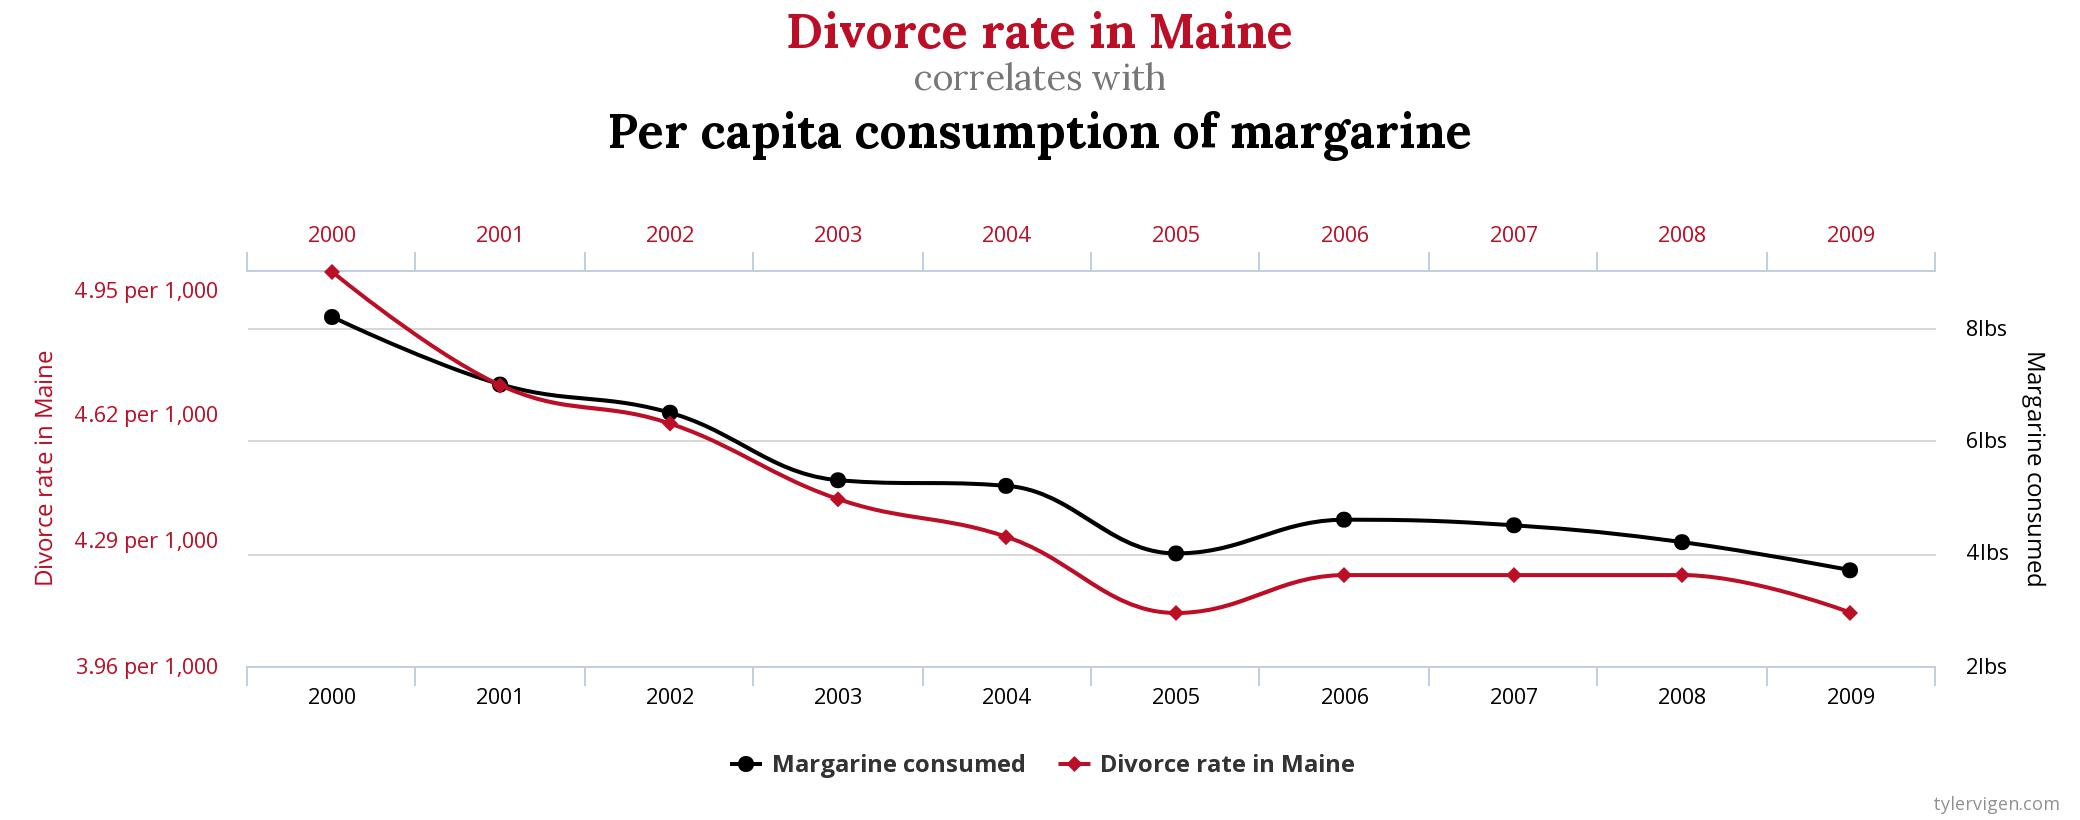 Chart showing the correlation between the divorce rate in main and per capita consumption of margarine.